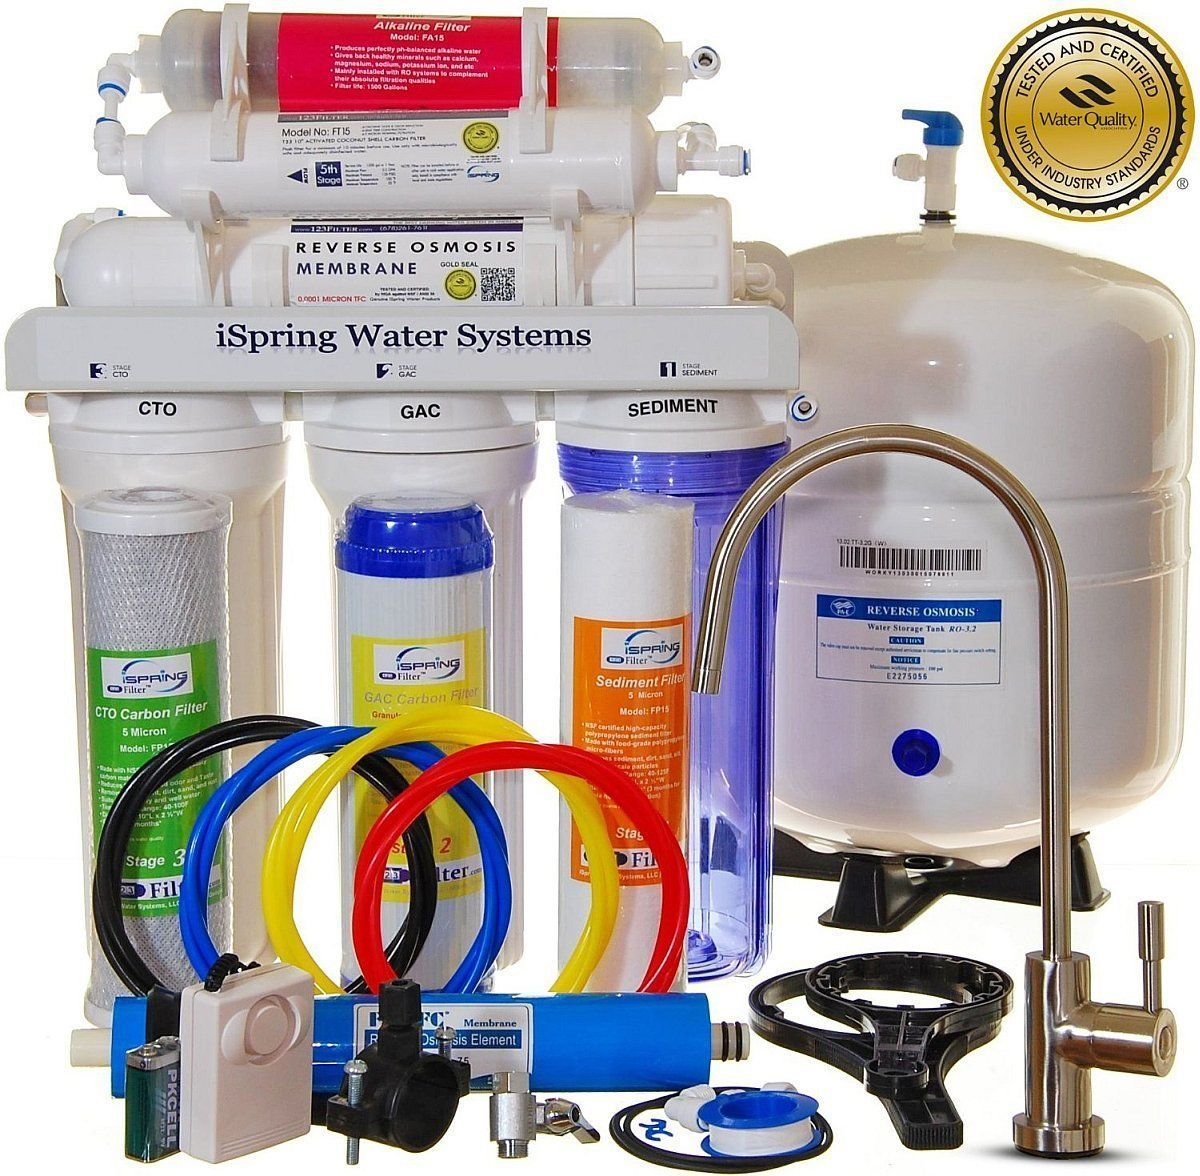 ISpring RCC7AK Built in the USA, WQA Certified Reverse Osmosis